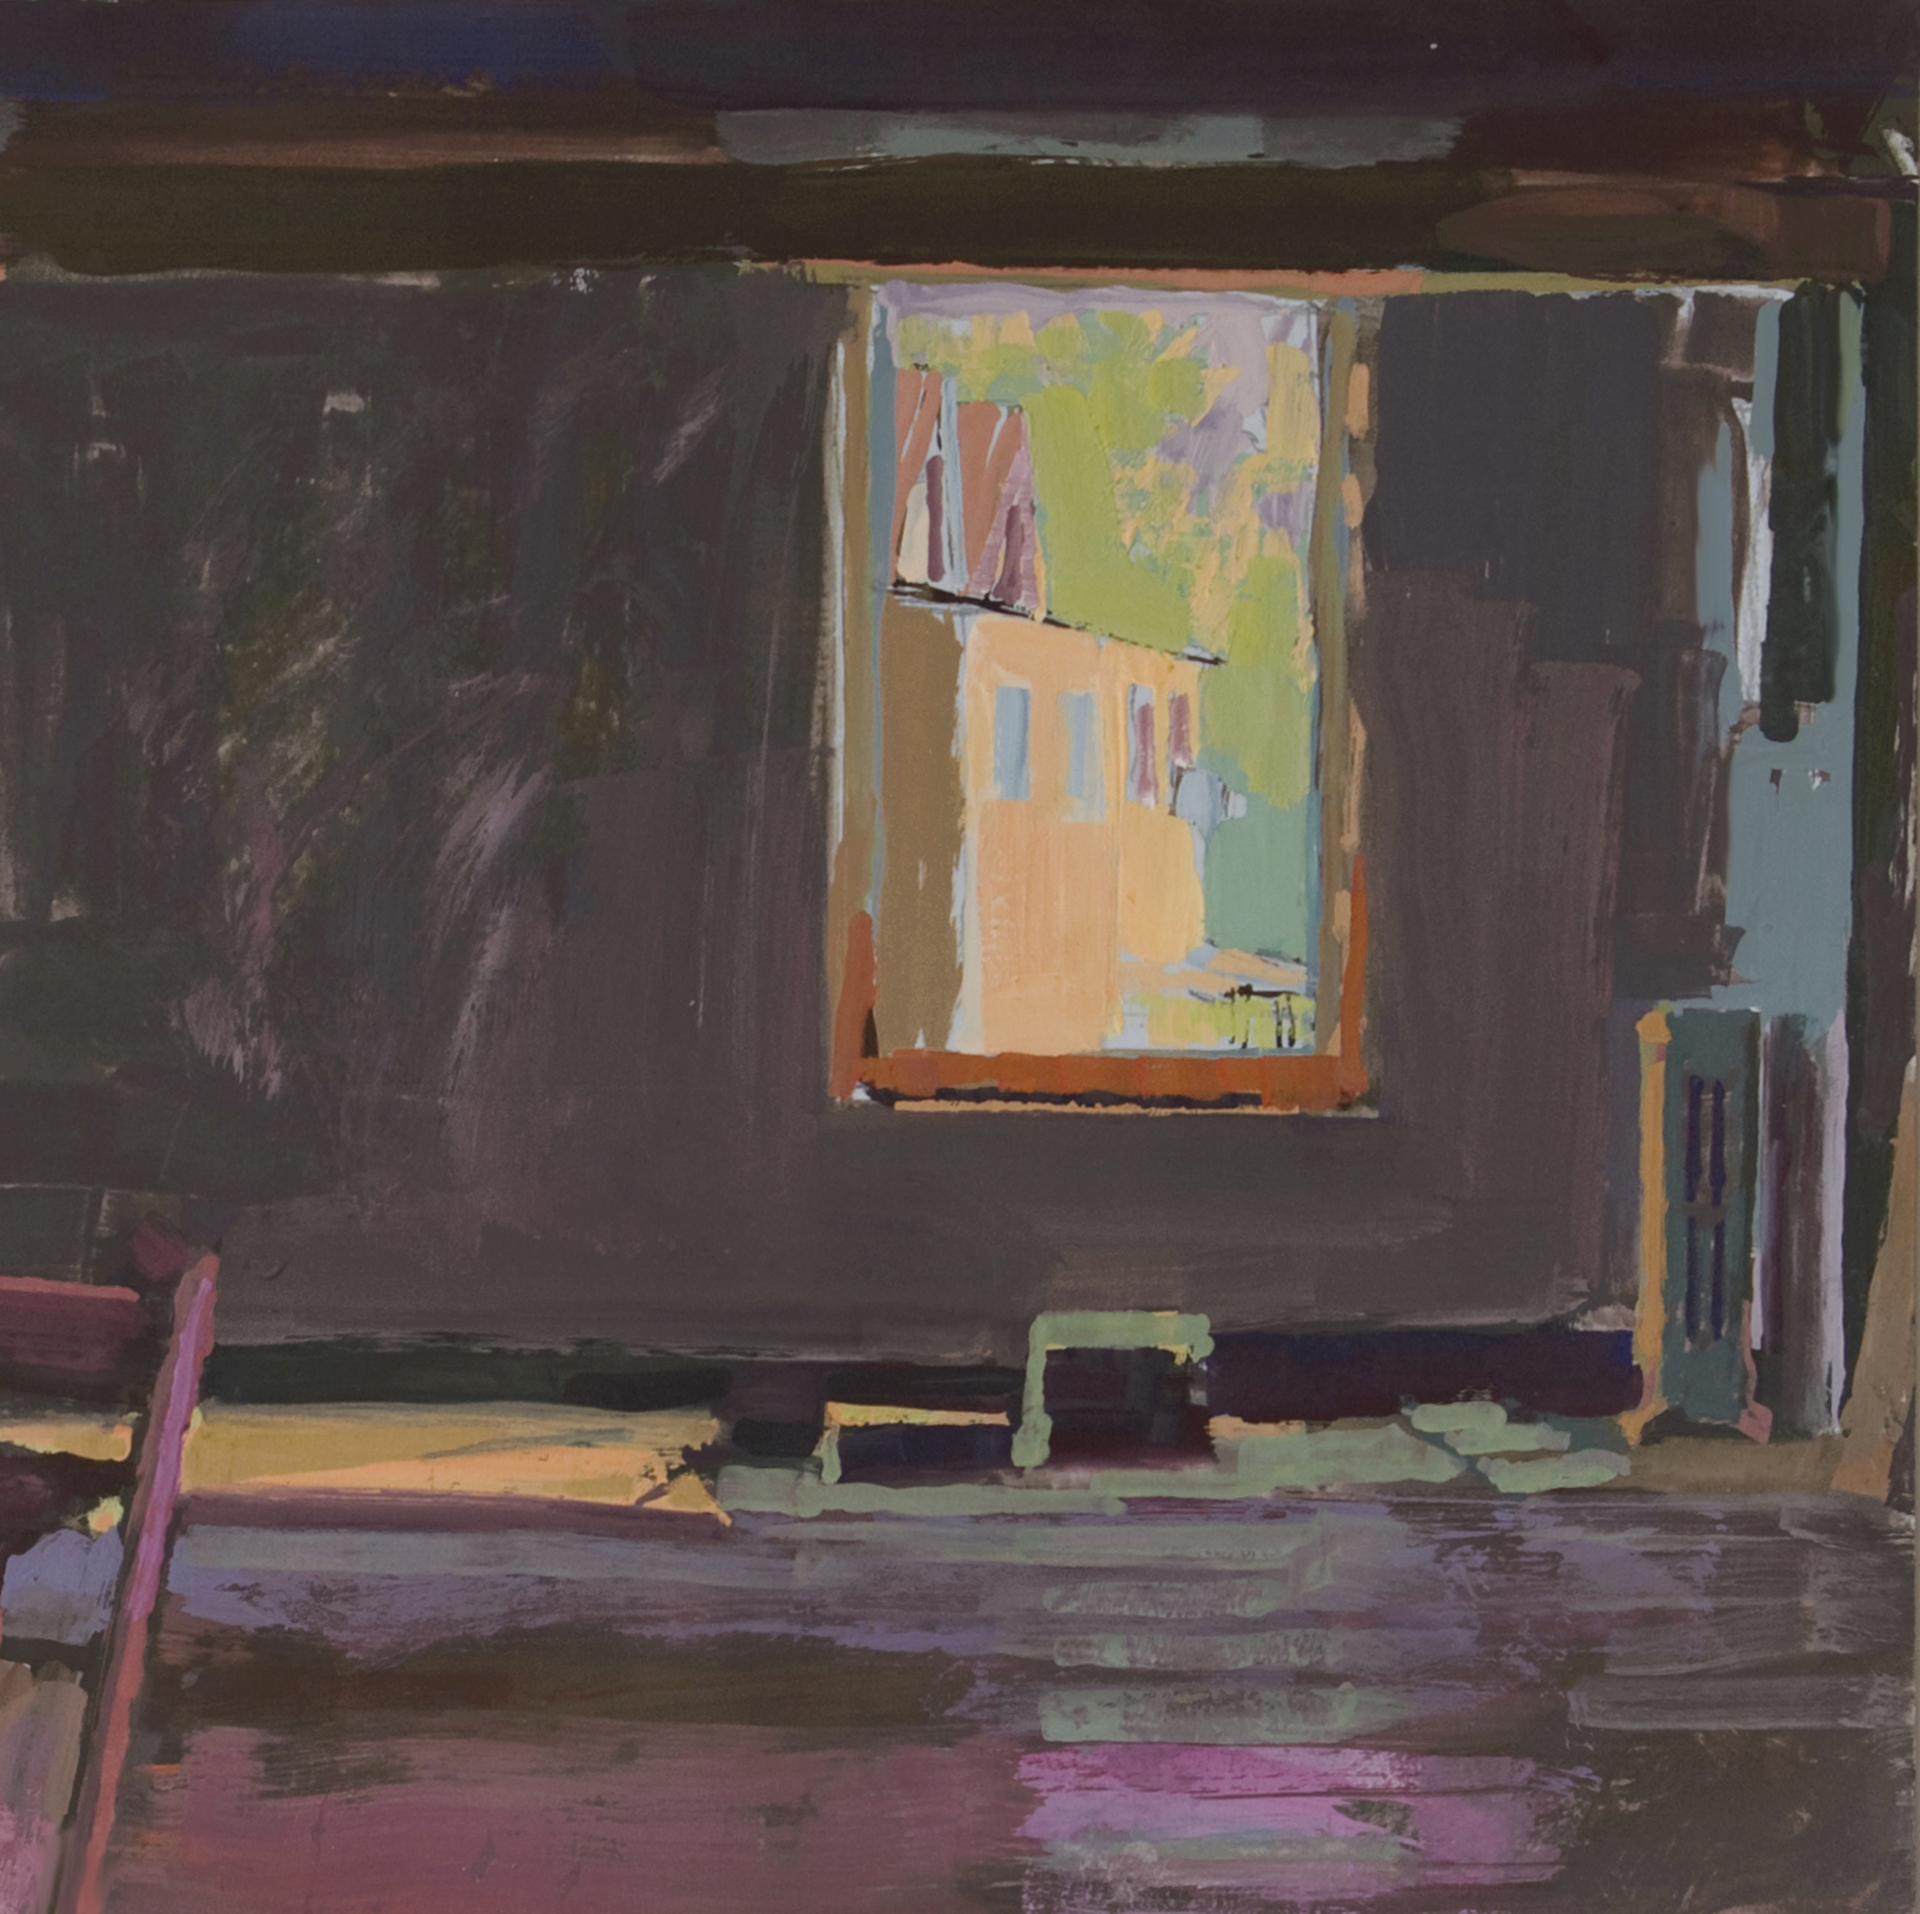 Gouache of an empty interior with  a radiator, a stool, and an open window.